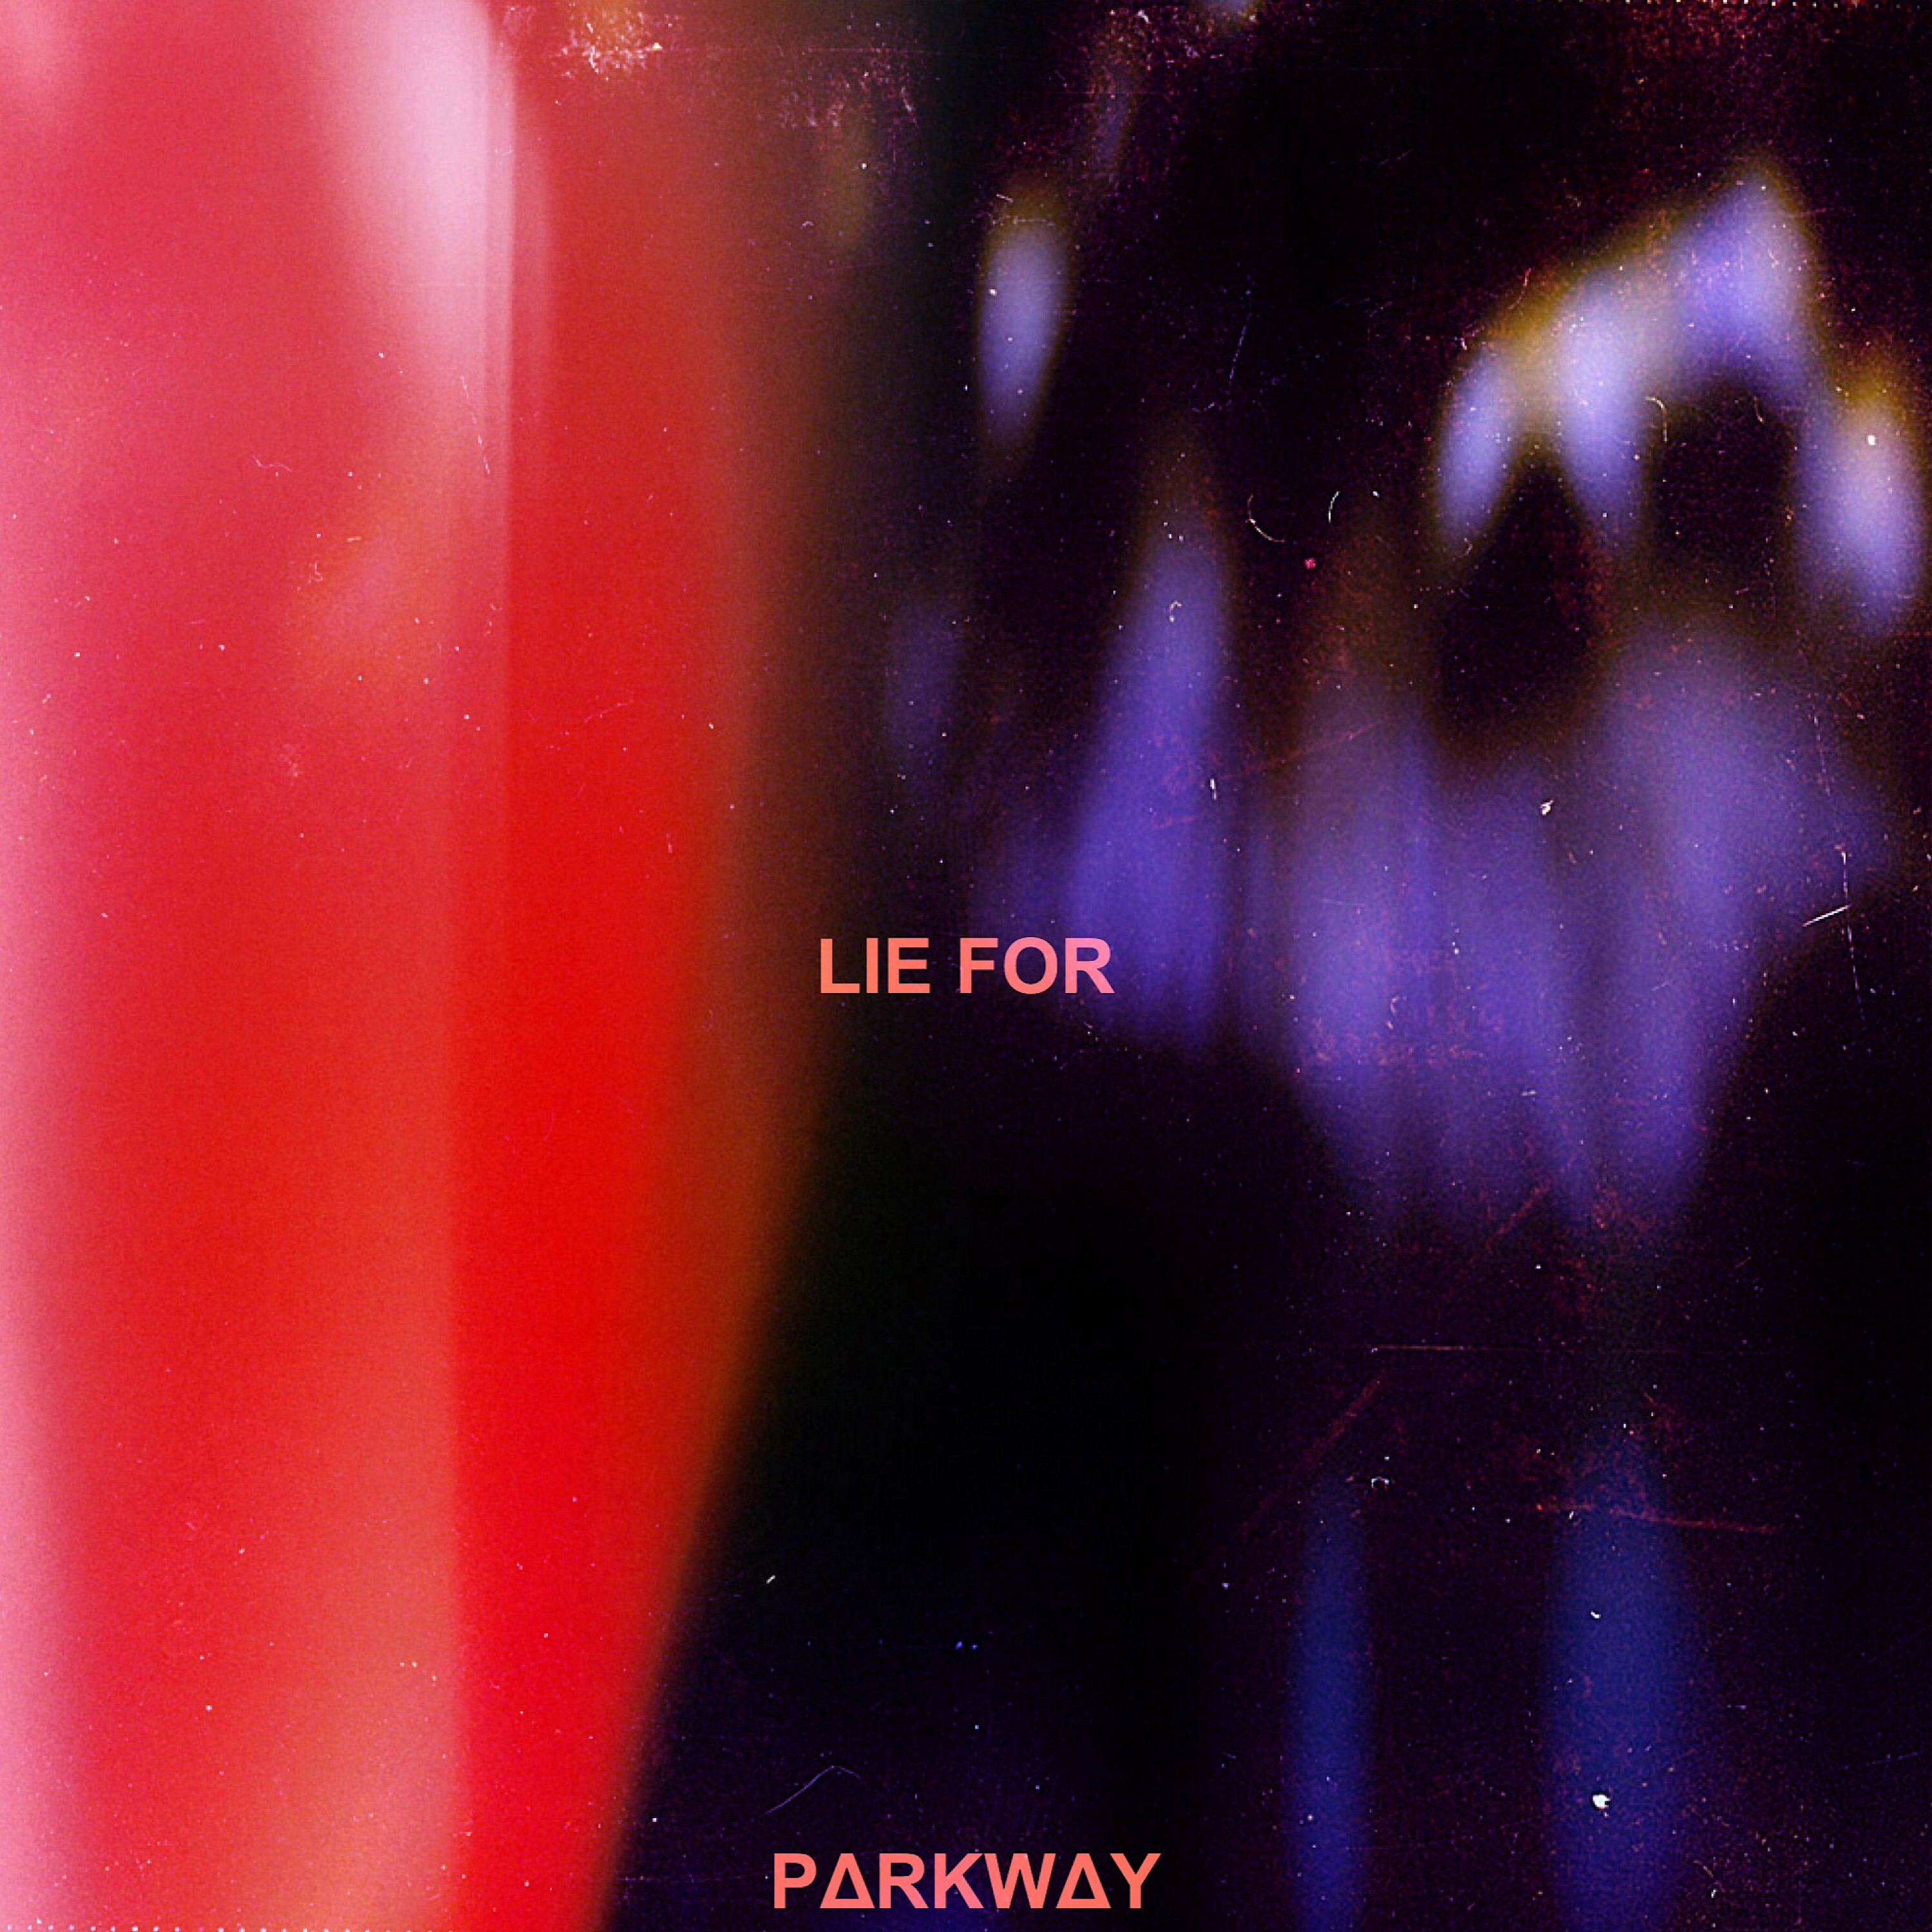 New Music: Parkway – Lie For